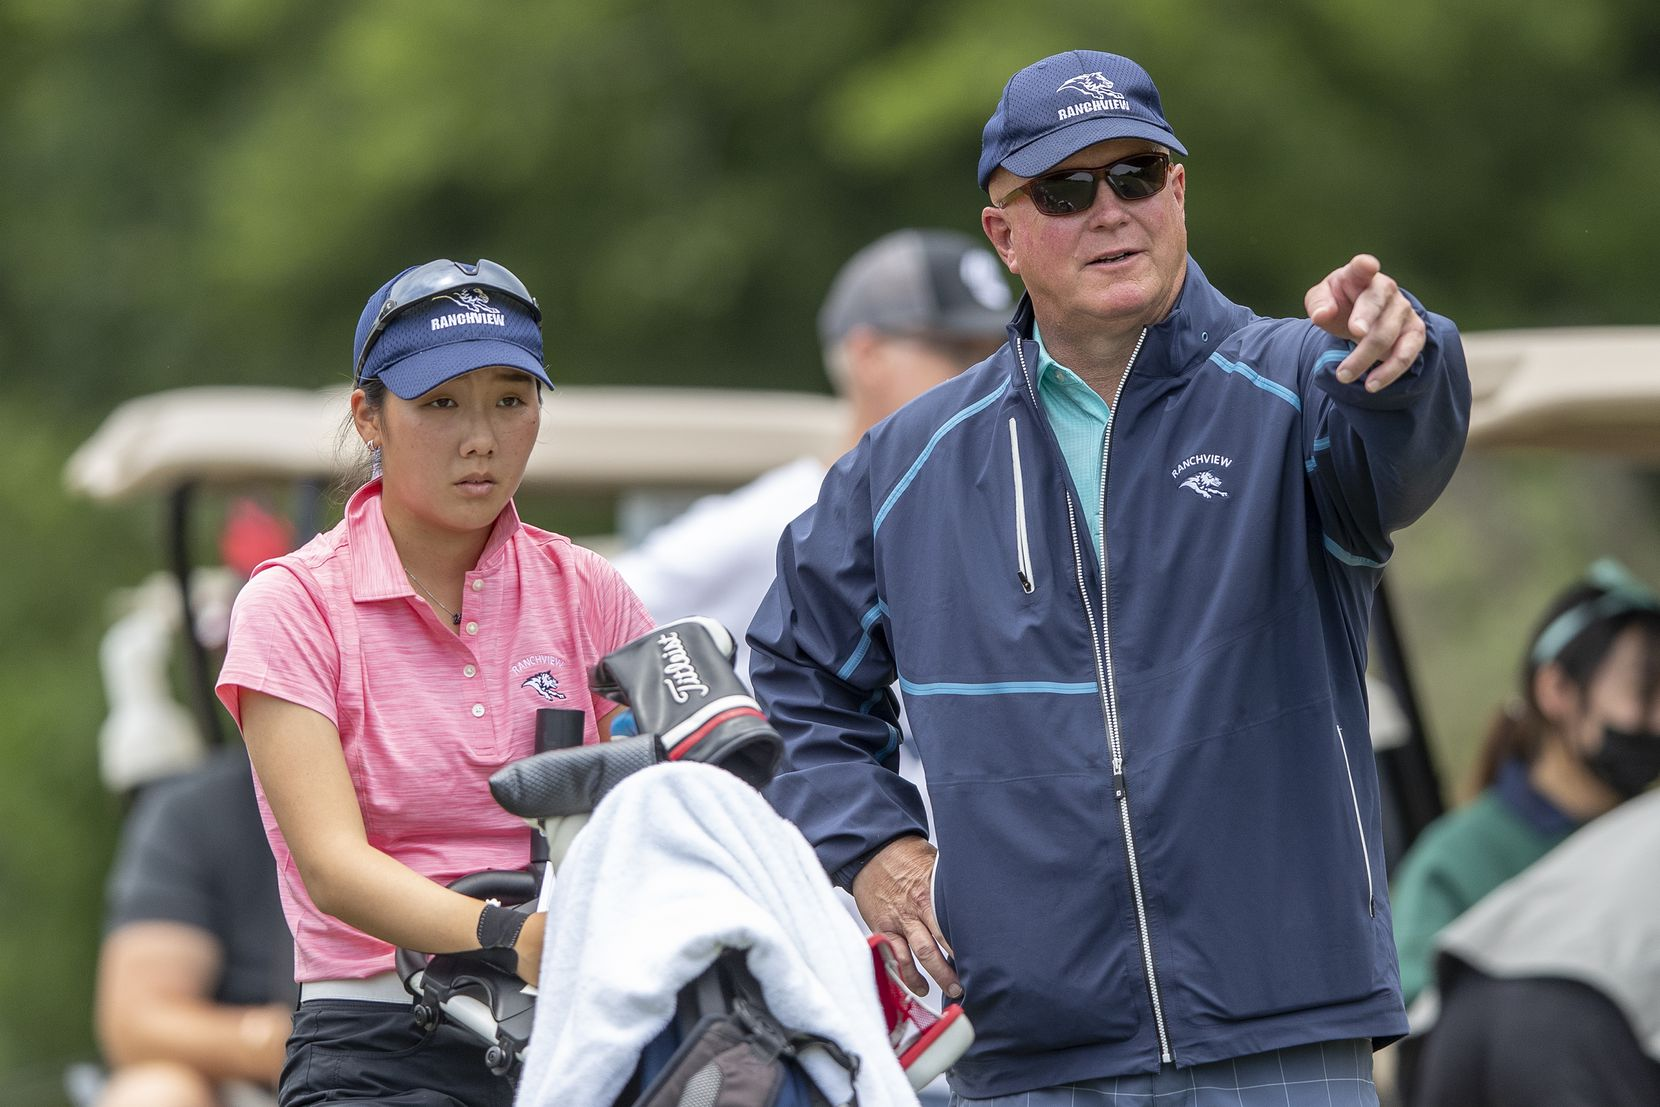 Carrollton Ranchview's Bohyun Park speaks with head coach Kevin Kelson on the 12th tee box during the final day of the UIL Class 4A girls golf tournament in Kyle, Tuesday, May 11, 2021. (Stephen Spillman/Special Contributor)